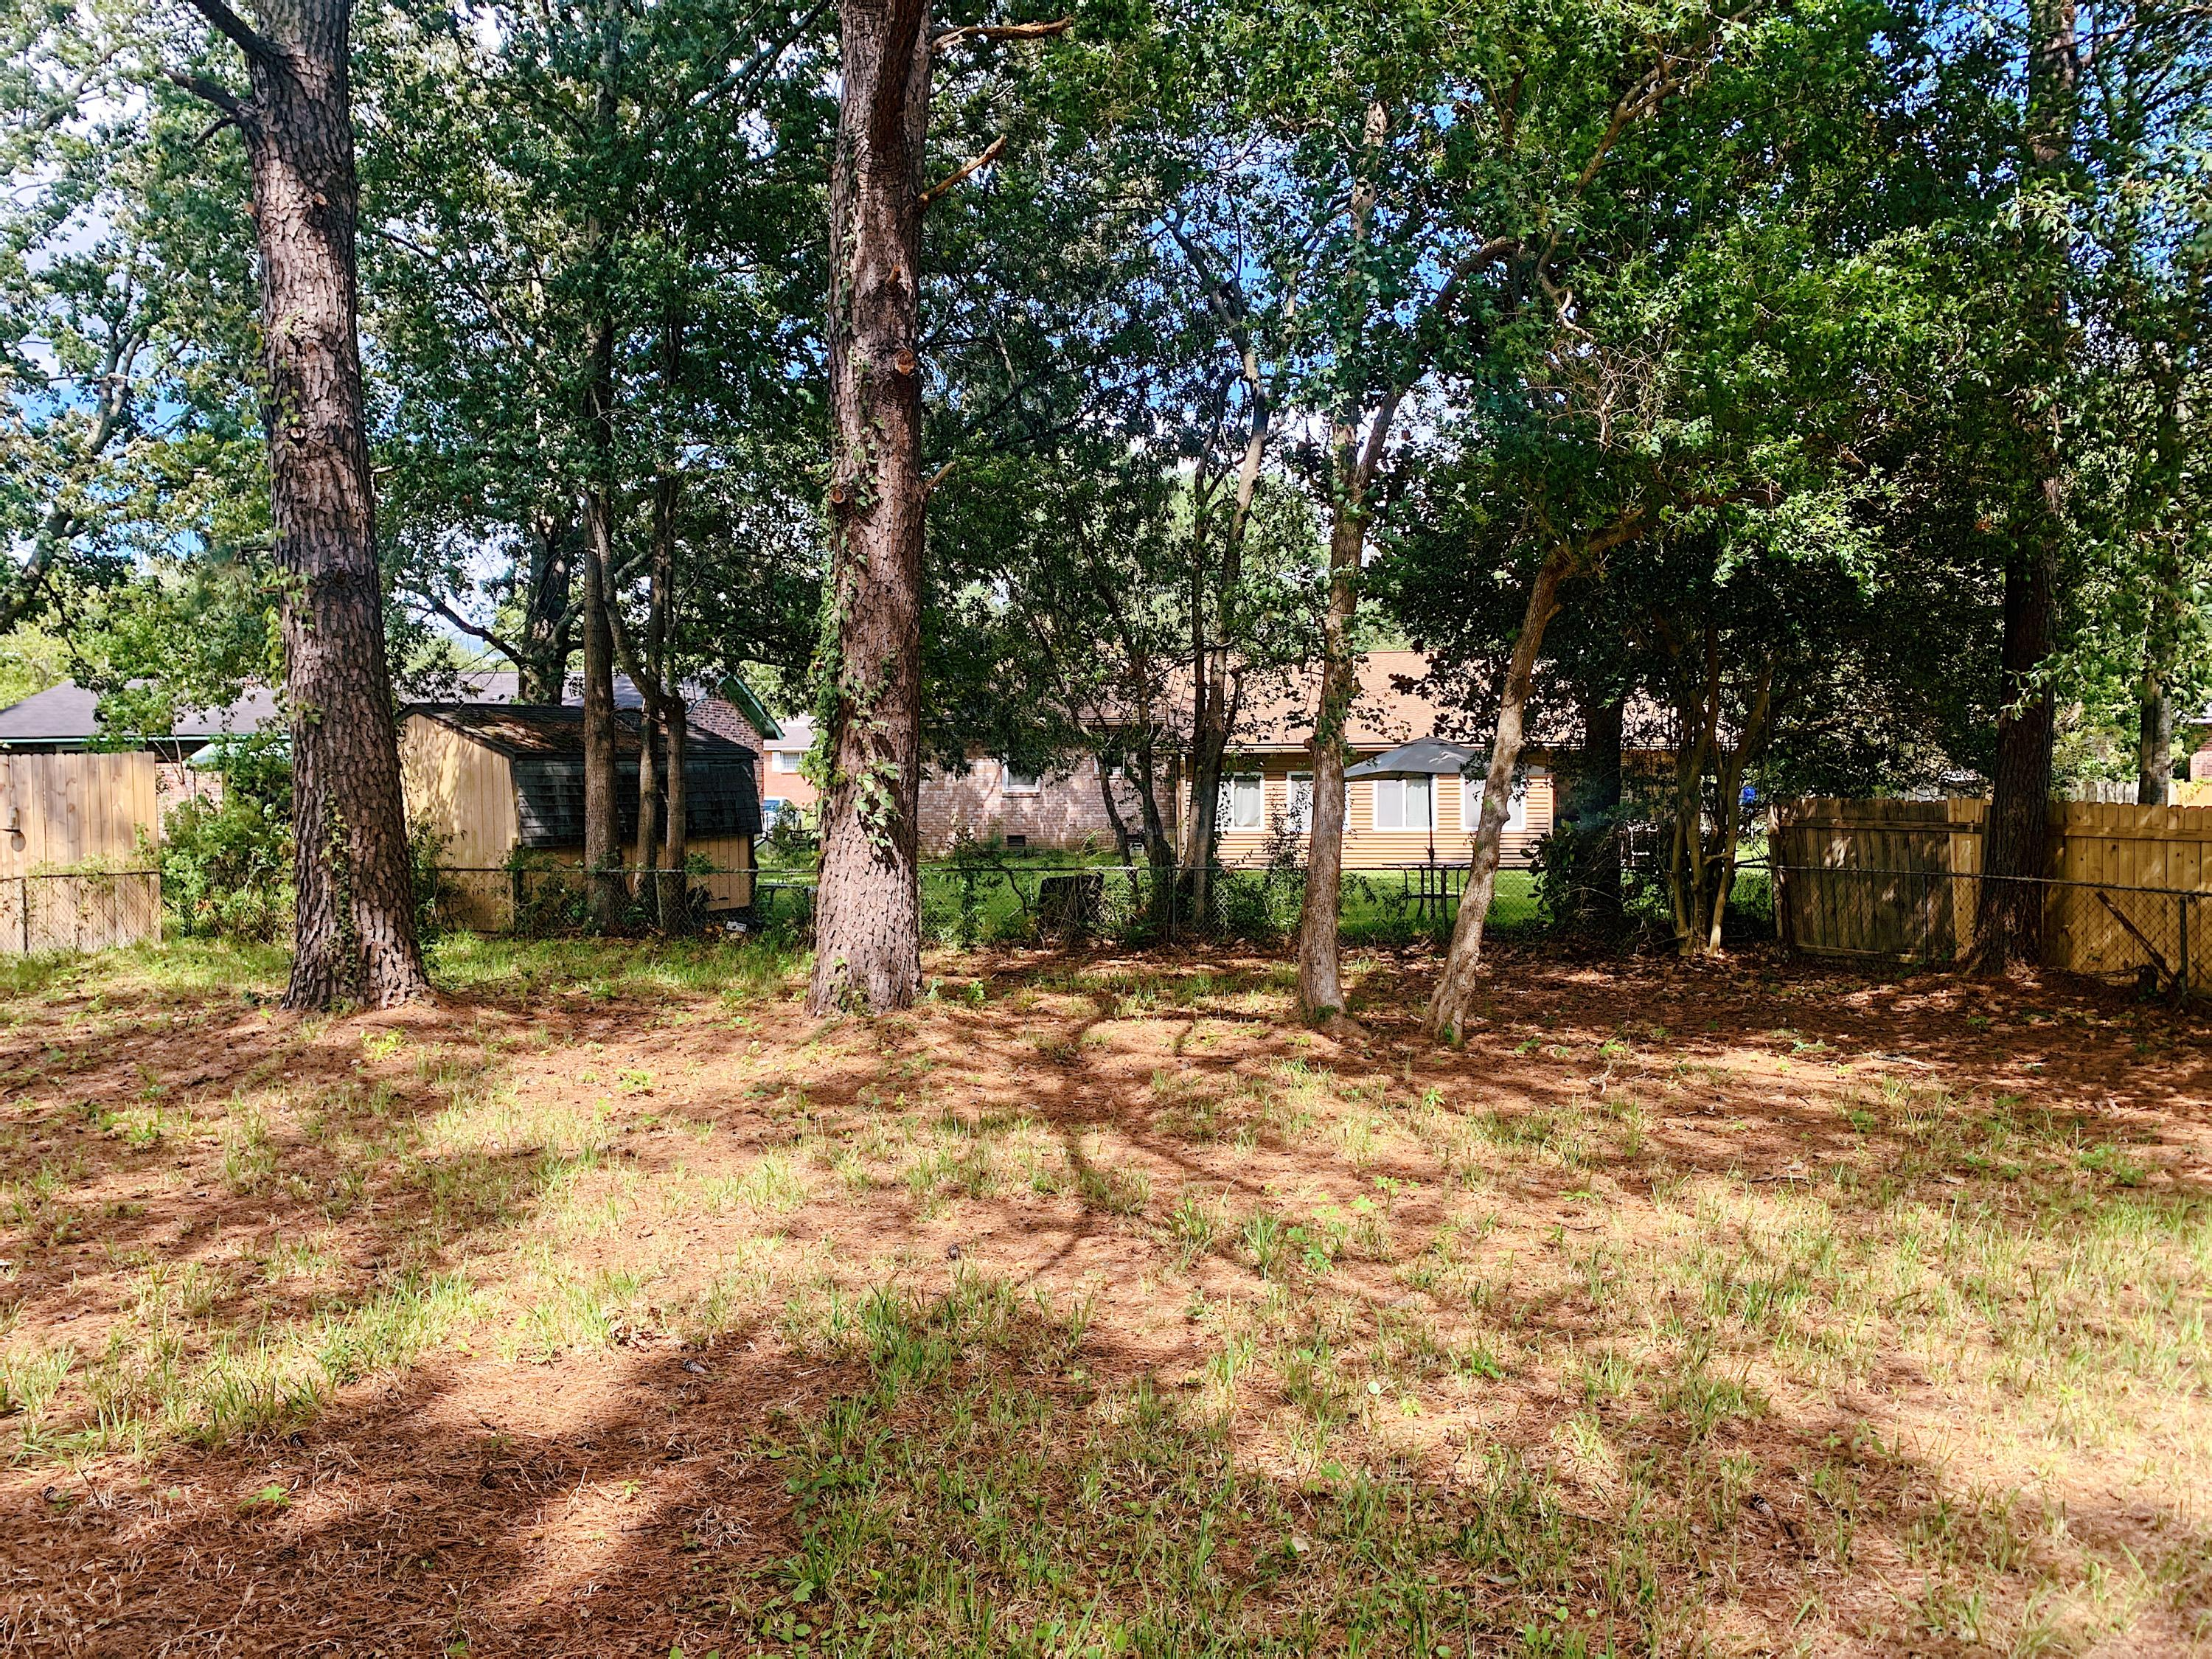 Glyn Terrace Homes For Sale - 5302 Mcroy, North Charleston, SC - 15